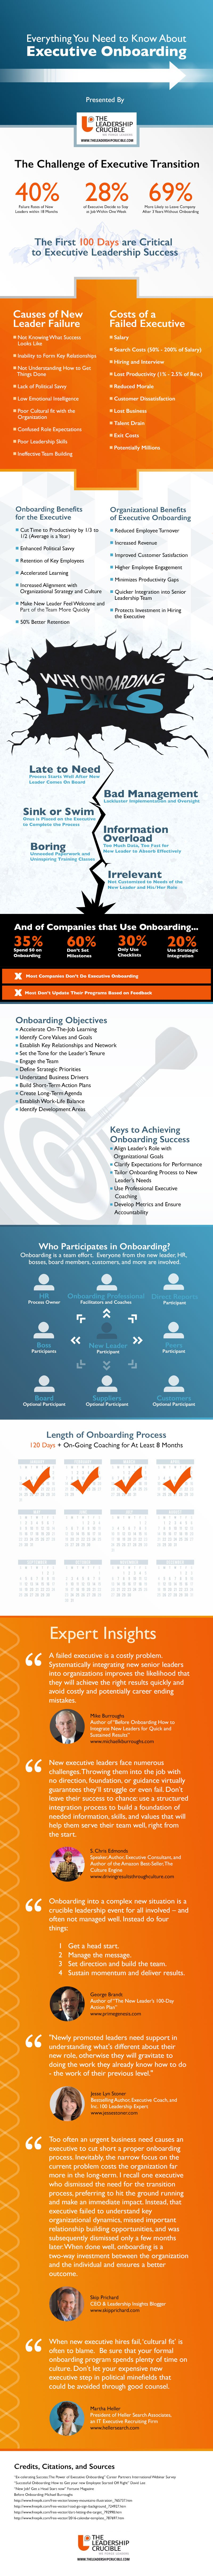 theleadershipcrucible-executive-onboarding-infographic_final 2